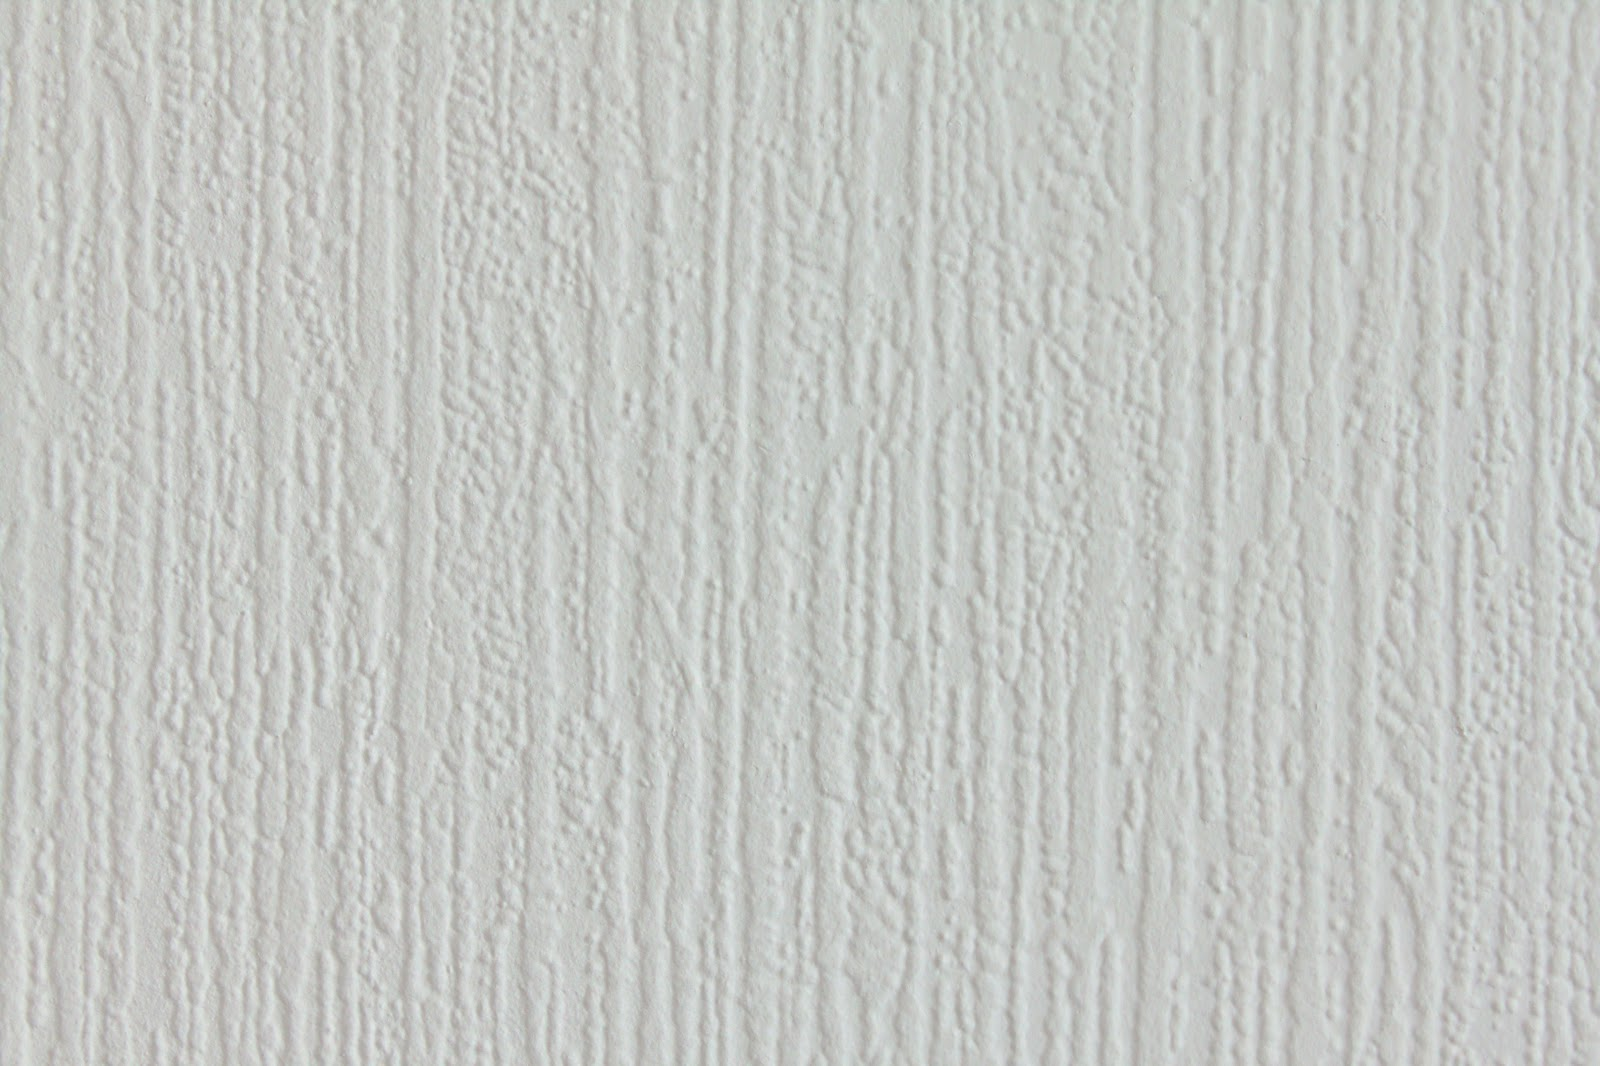 mr textures wall plaster texture white stucco paper